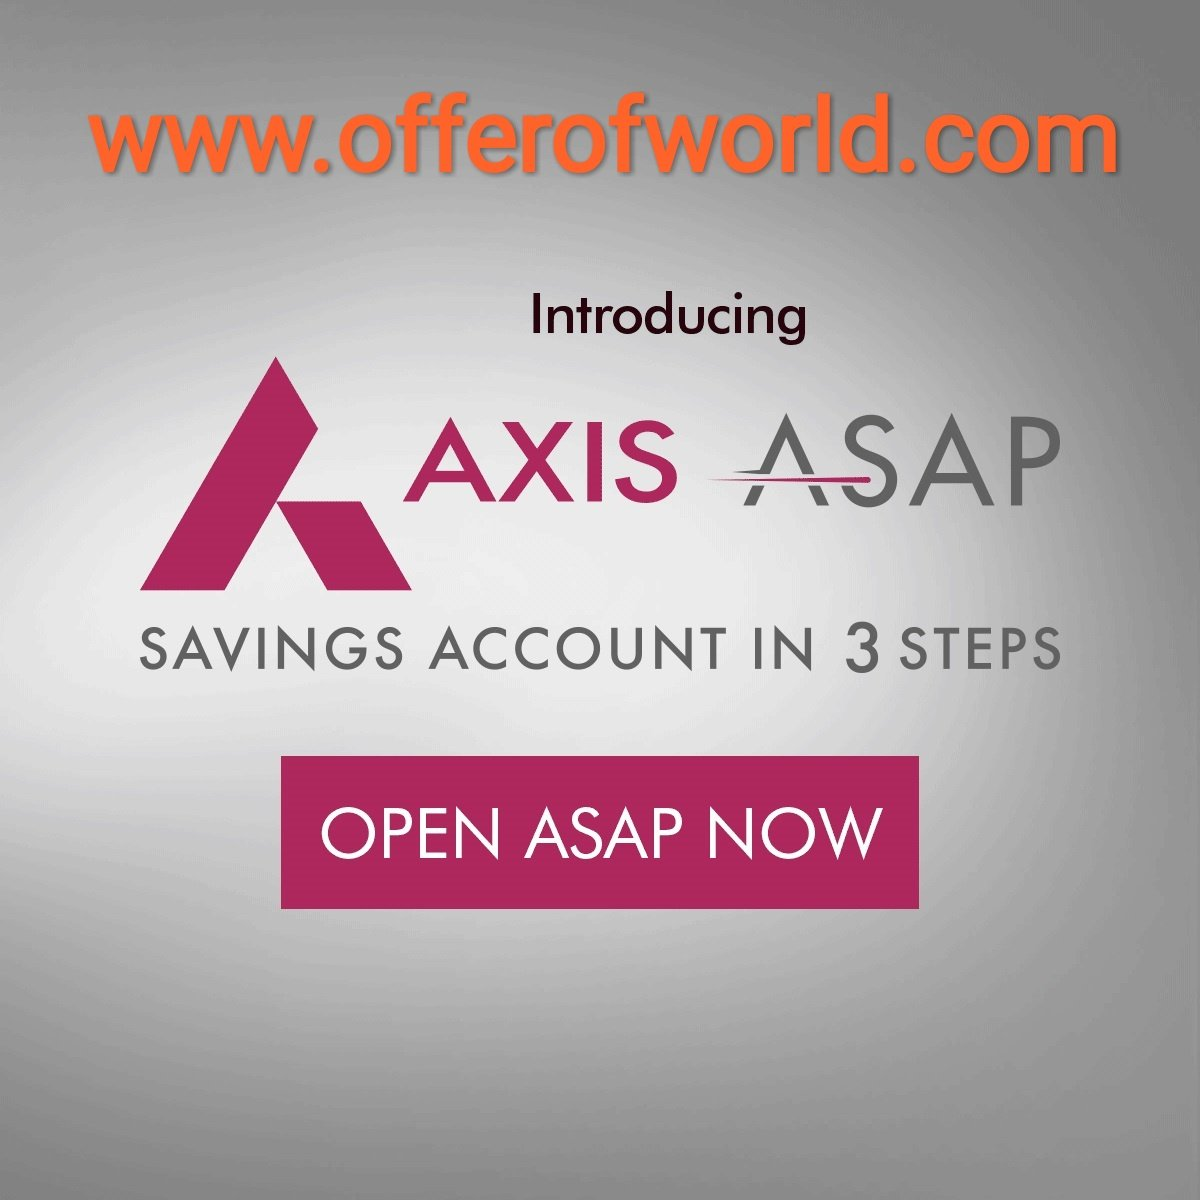 I Have Proof Added) How To Open Axis Bank ASAP Online Saving Account With Zero  Balance. - OFFER OF WORLD